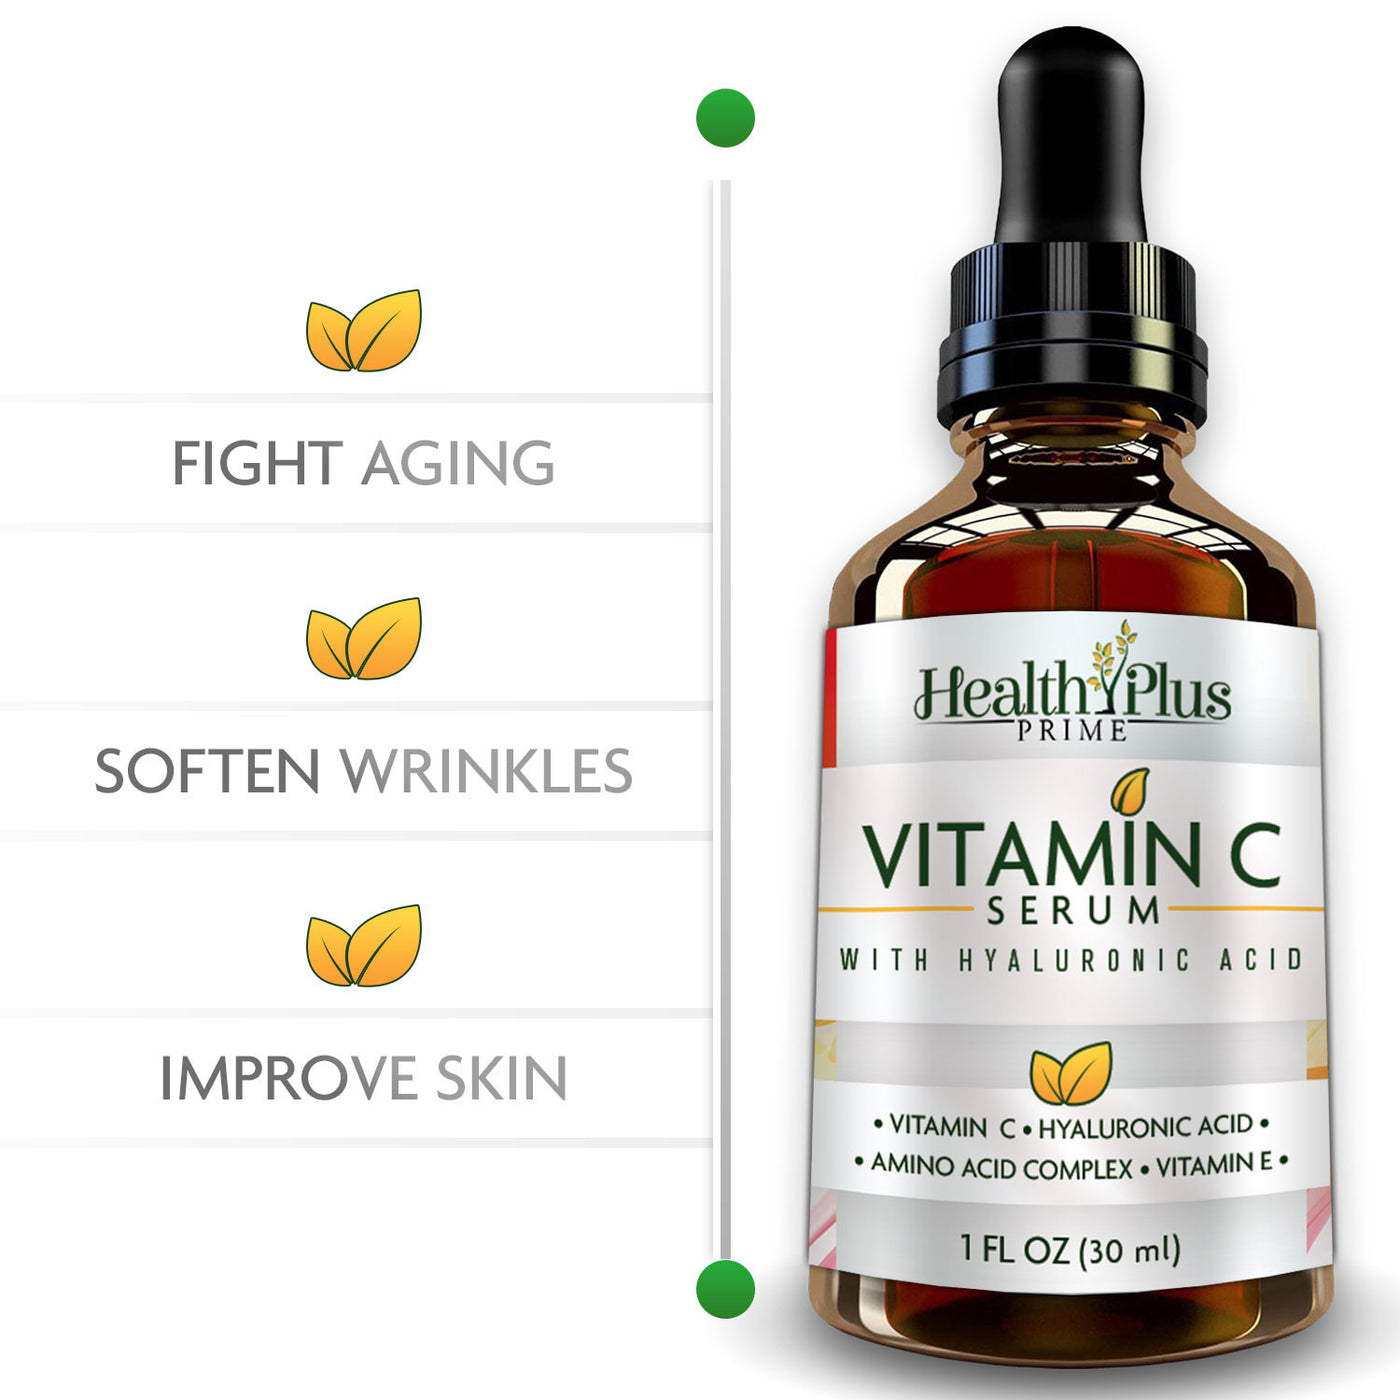 Vitamin C Serum | Facial Vitamin Serum Anti Wrinkle Oil | Pure Vit C Antioxidant Serum | Antiaging Skin Care For Face | Hyaluronic Acid Dark Spot Corrector Oils and Serums